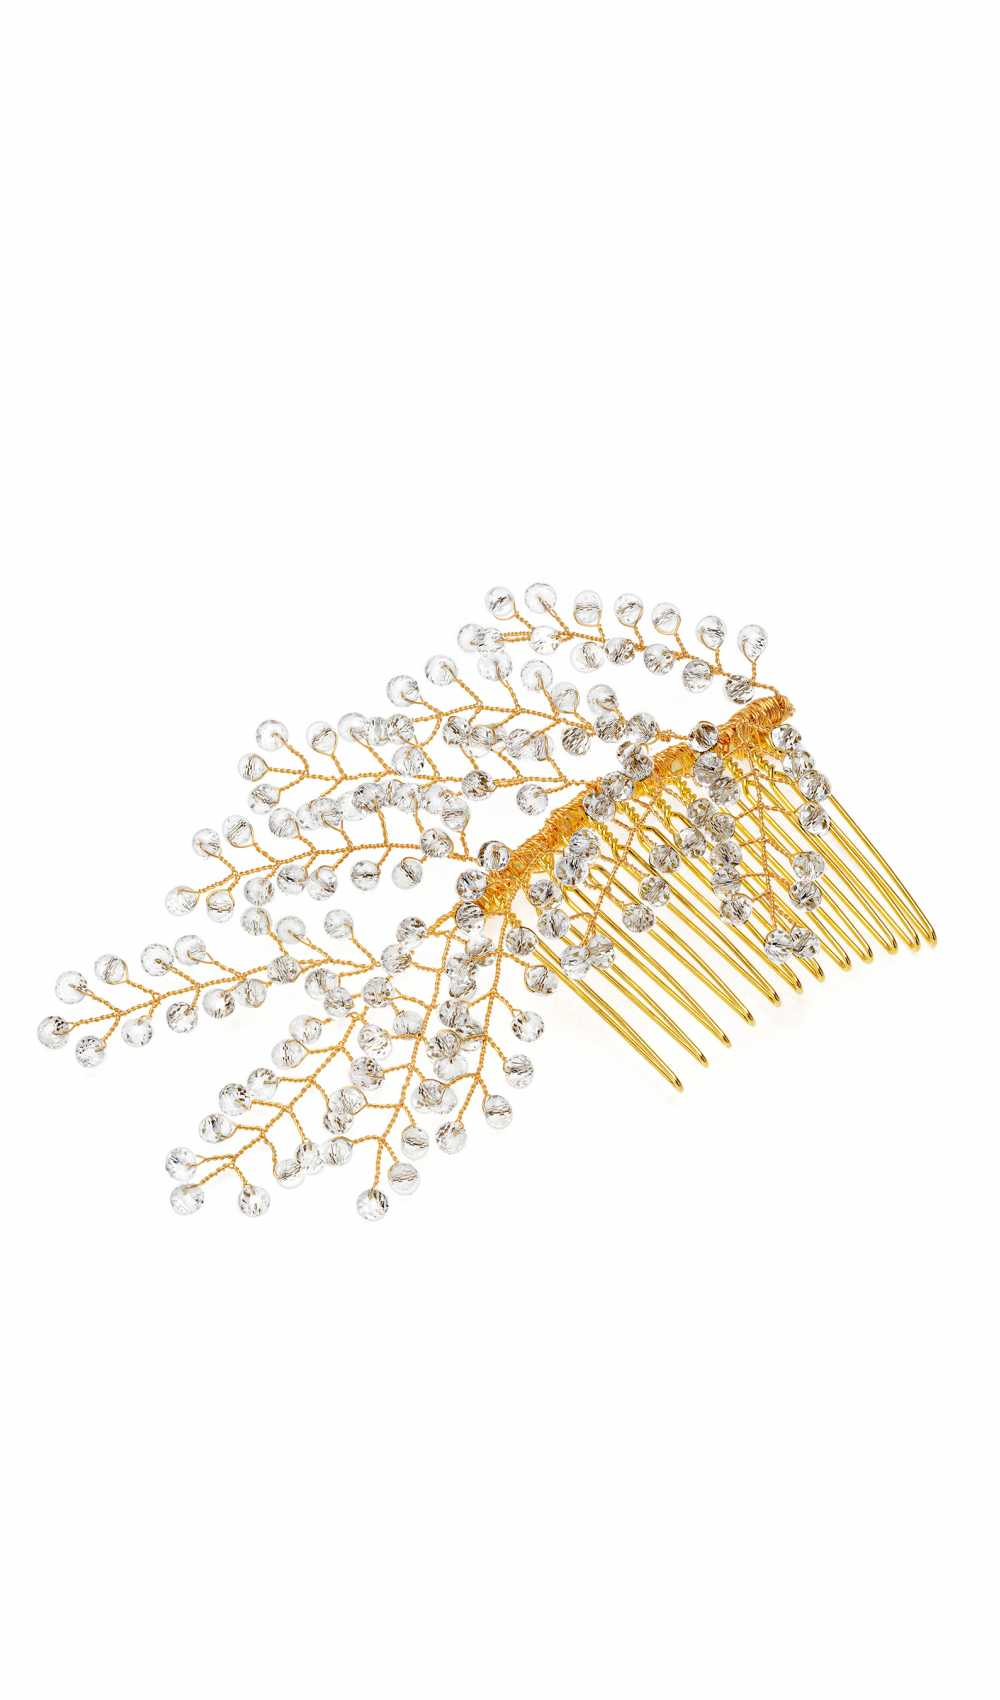 Sparkling hair comb in gold